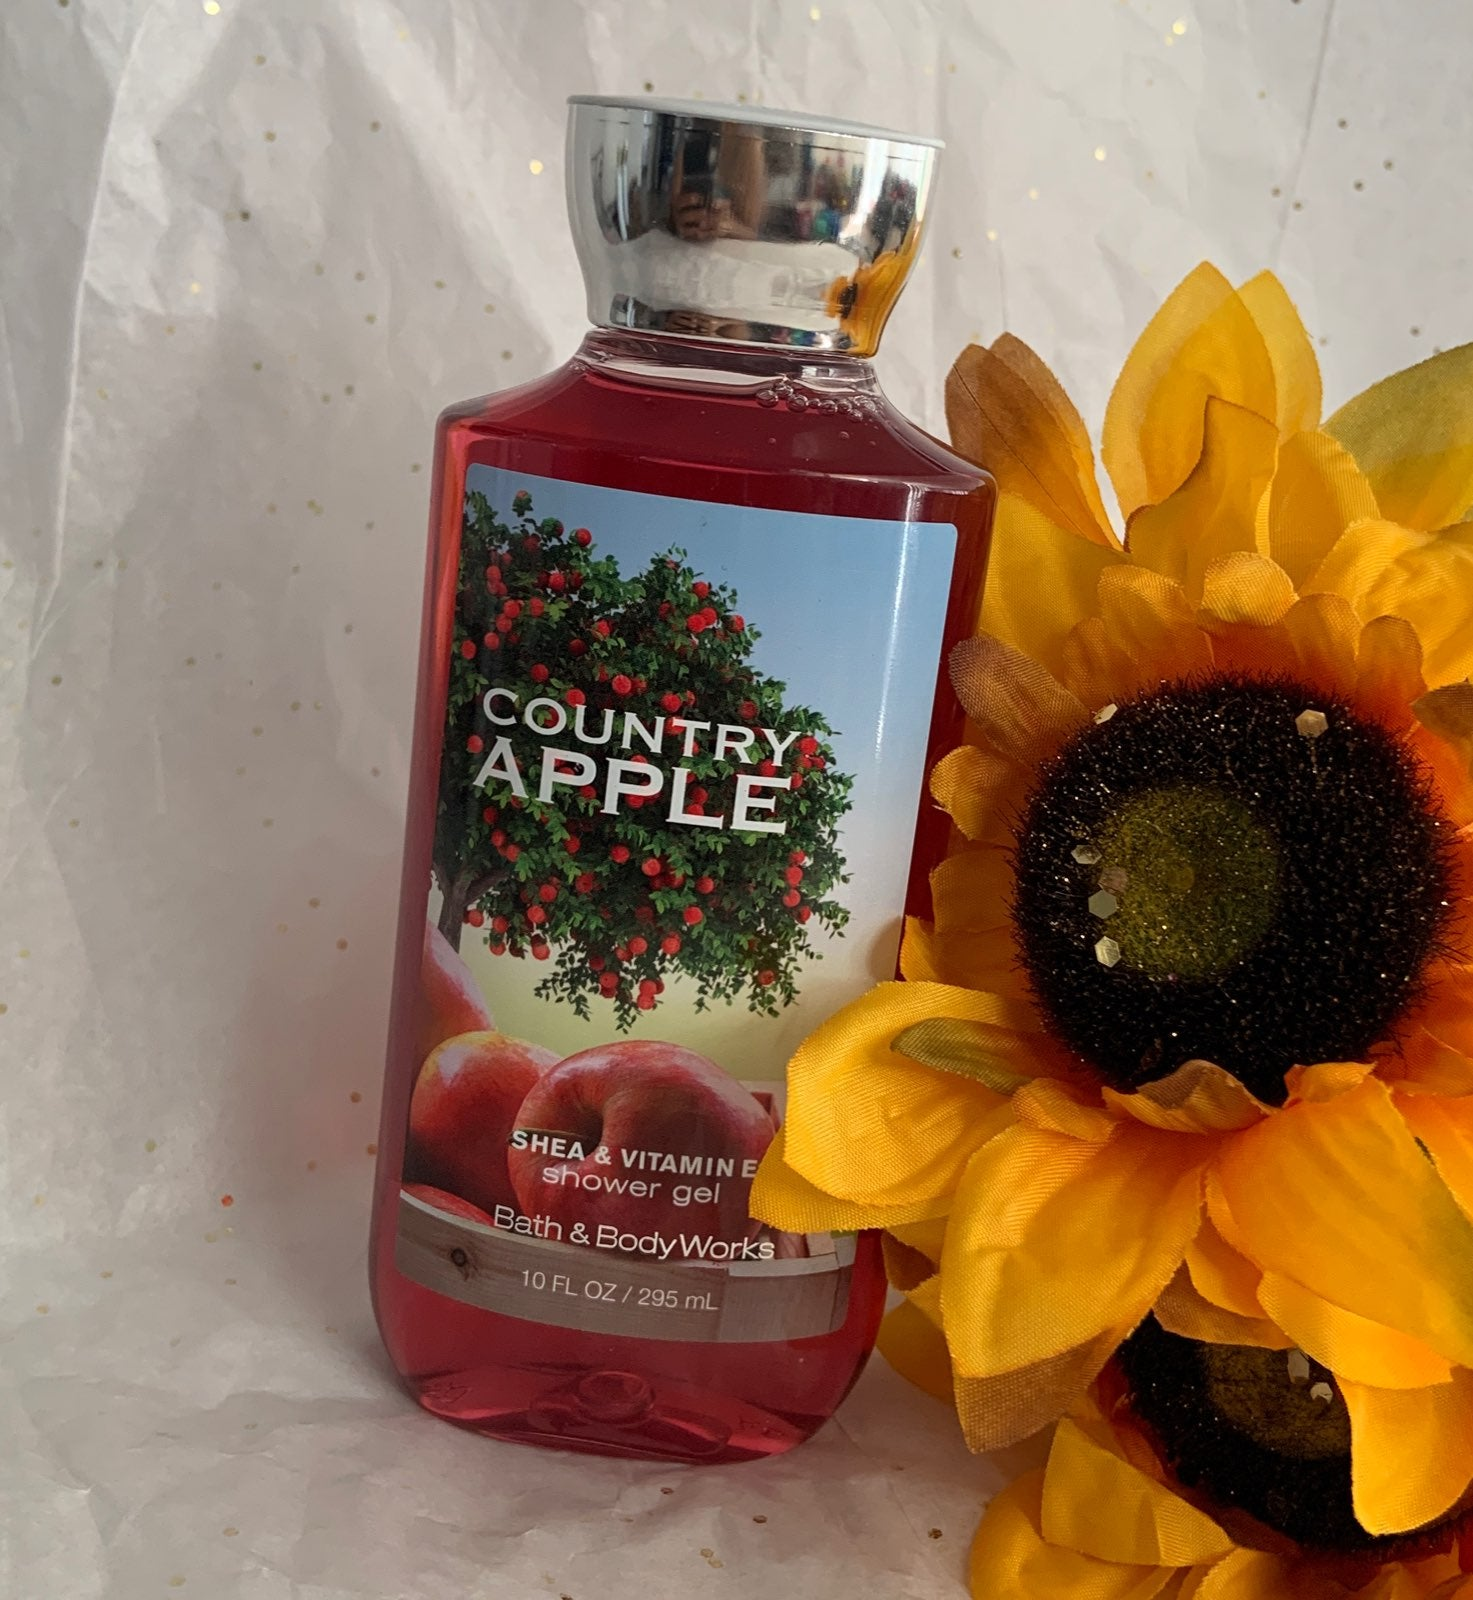 Bath and Body Works soap